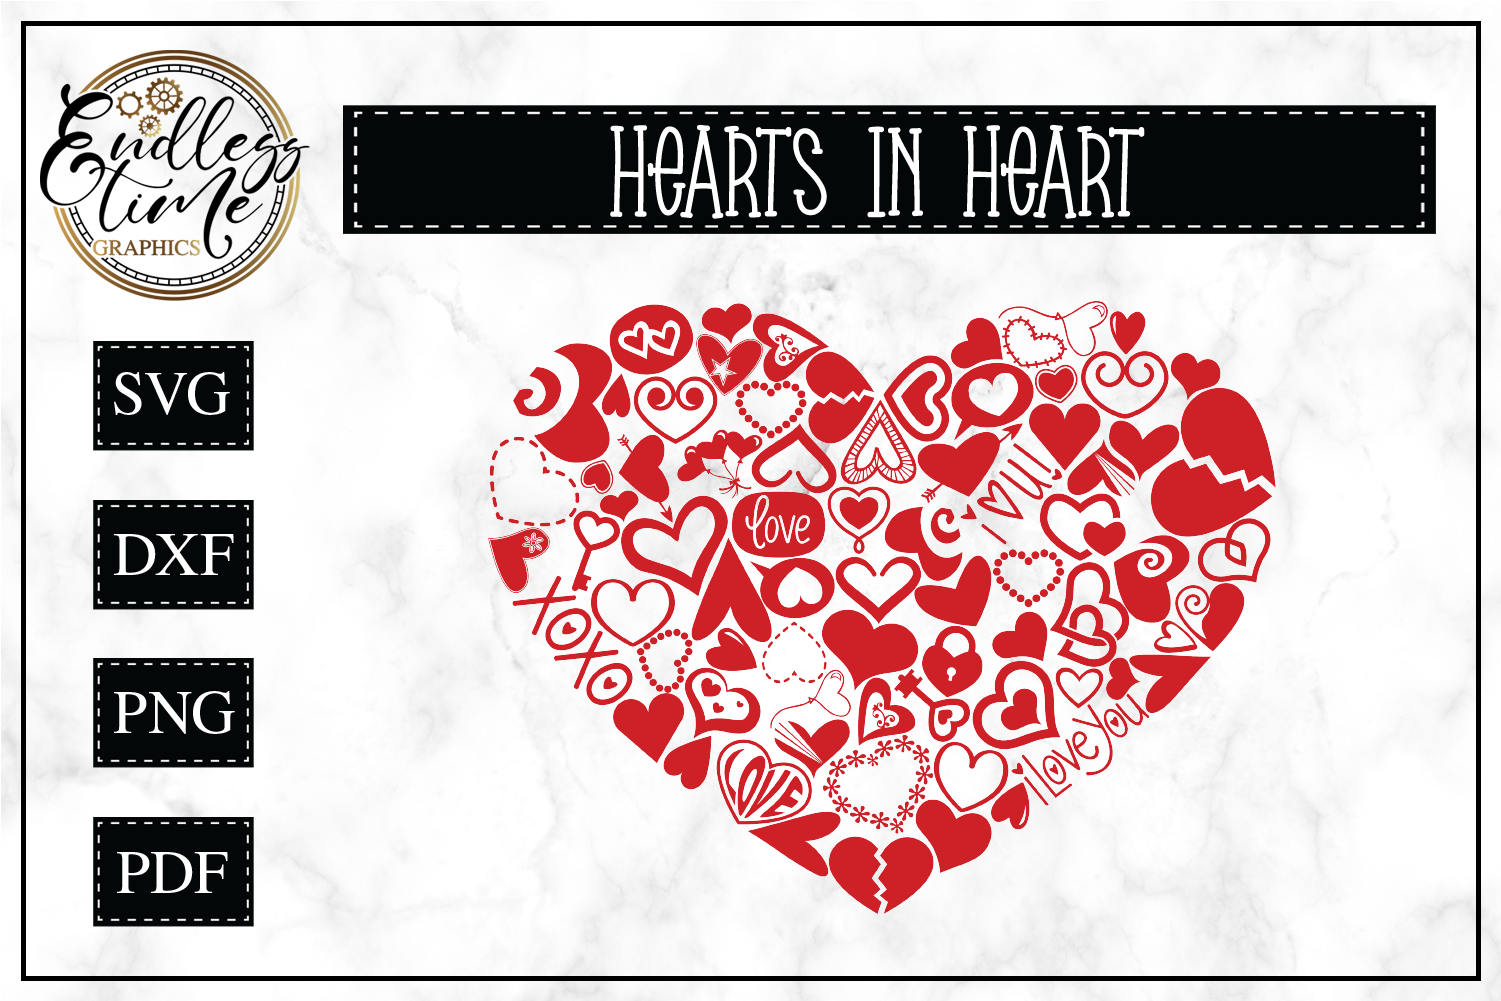 Hearts in Heart SVG Cut FIle example image 1